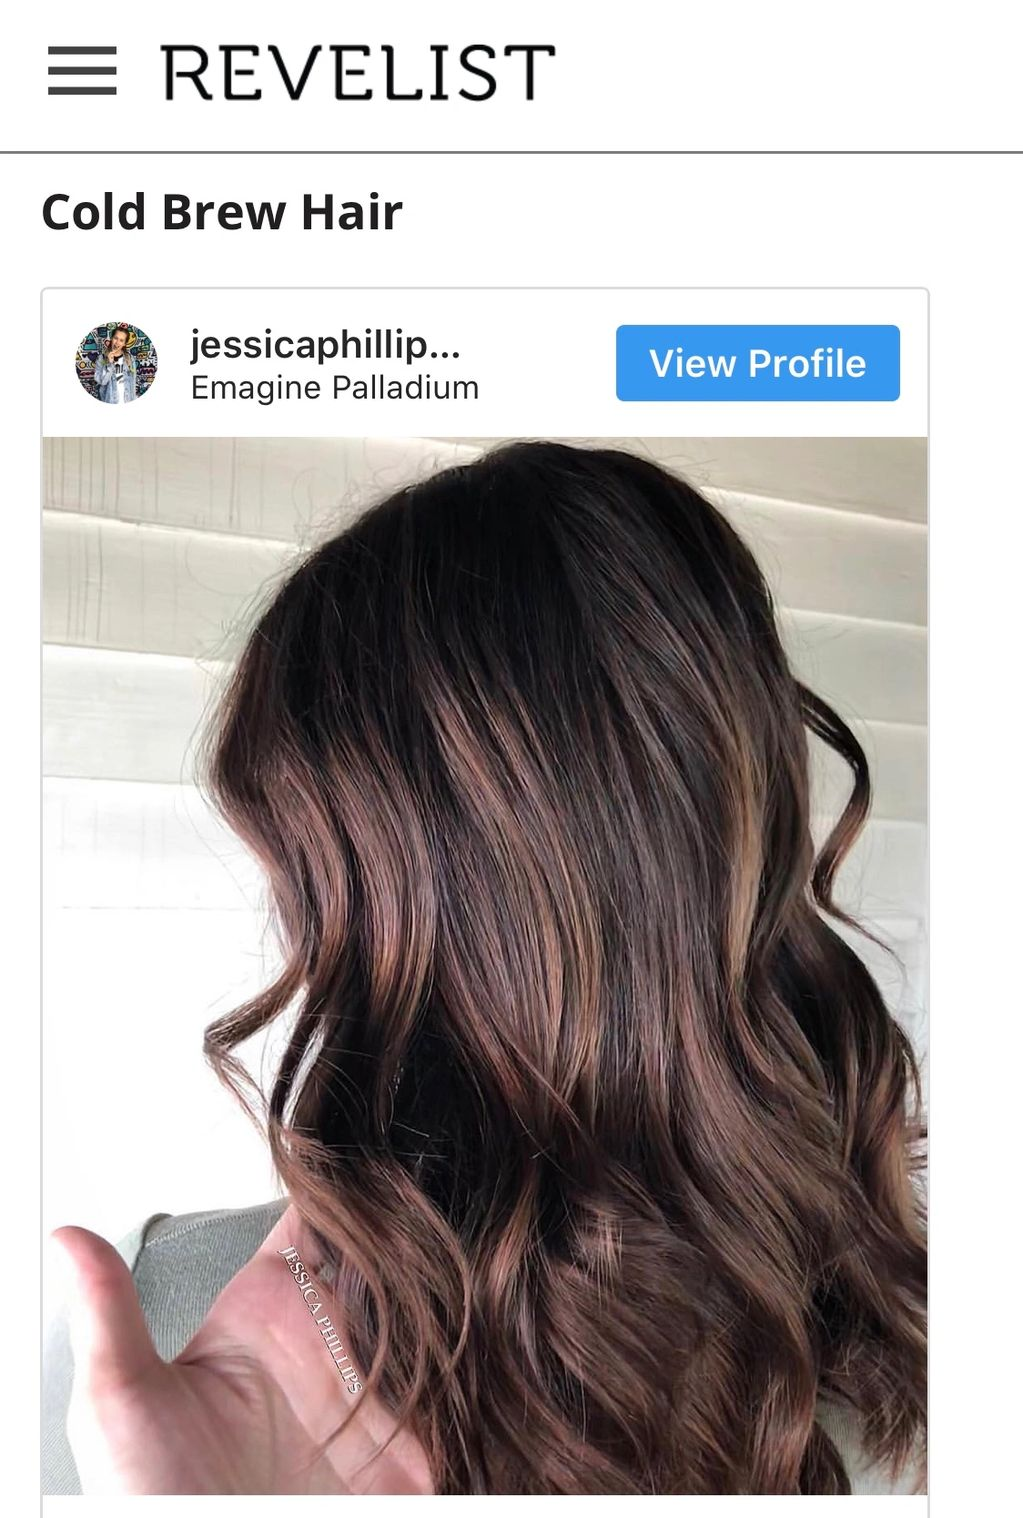 jessica phillips hair cold brew hair color revelist feature